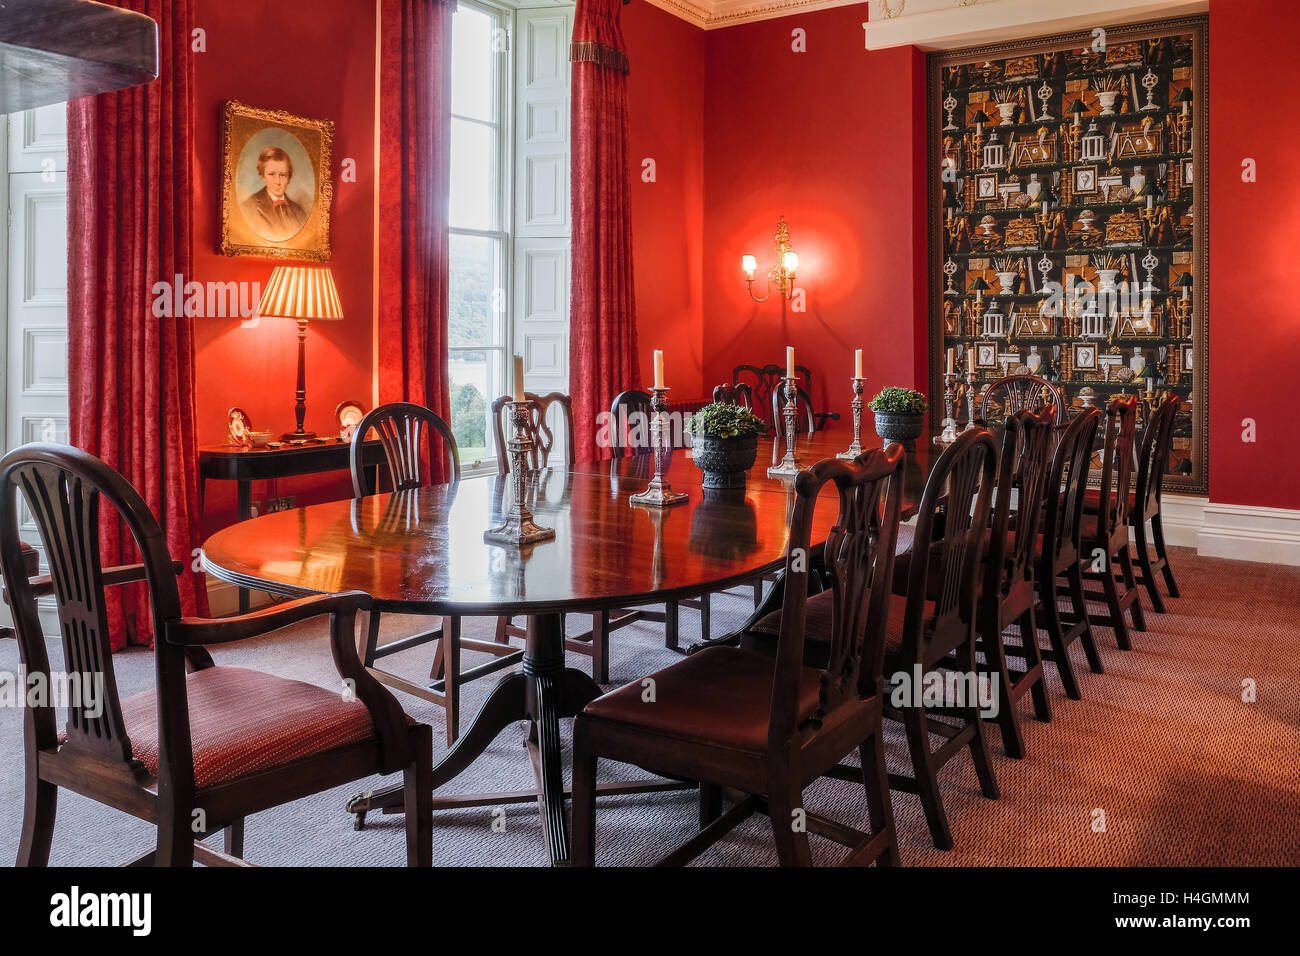 Delicieux Grand Dining Room In An English Country Manor House